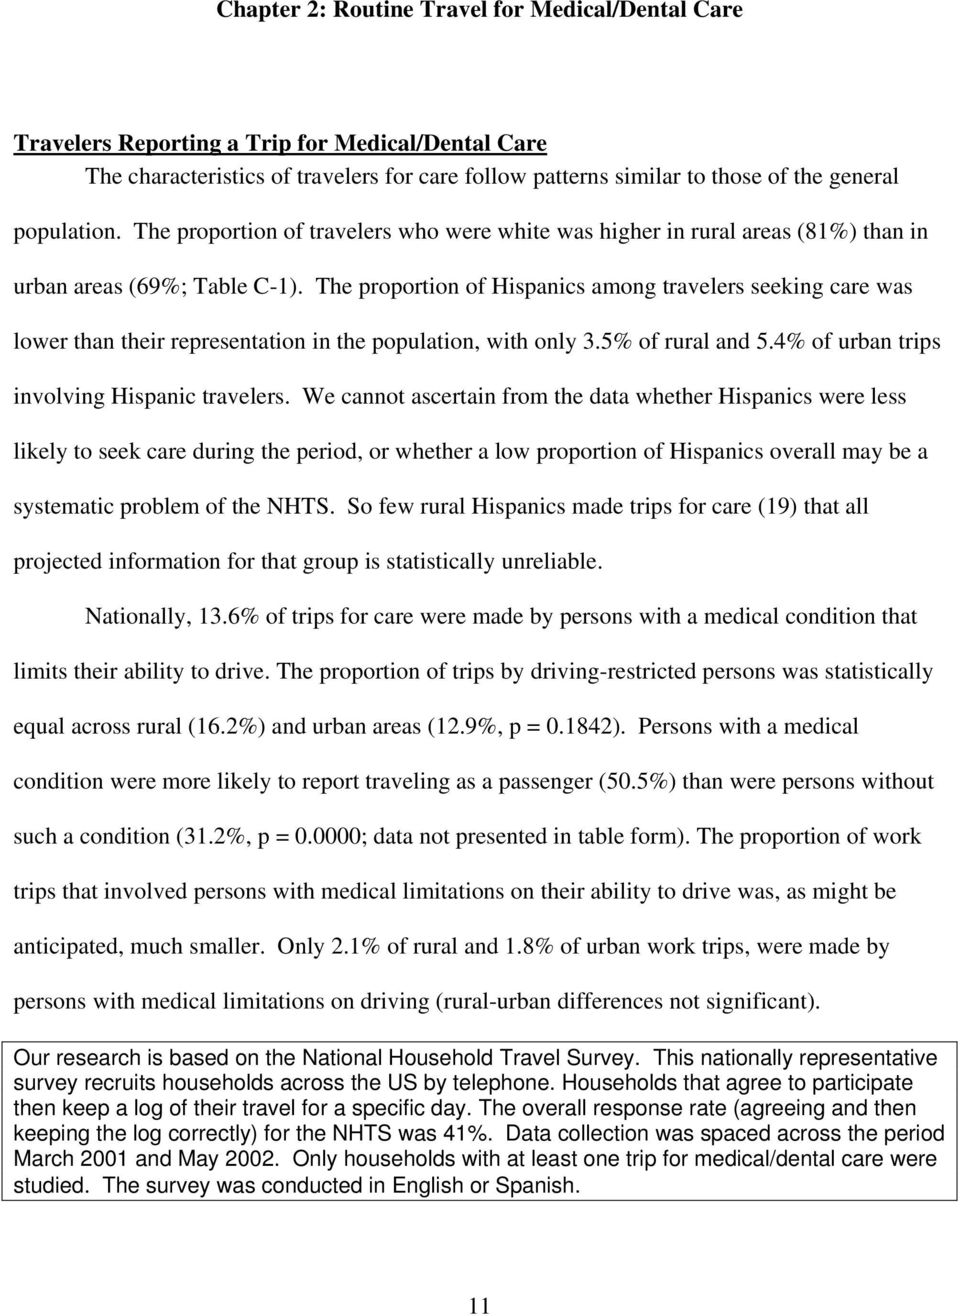 The proportion of Hispanics among travelers seeking care was lower than their representation in the population, with only 3.5% of rural and 5.4% of urban trips involving Hispanic travelers.